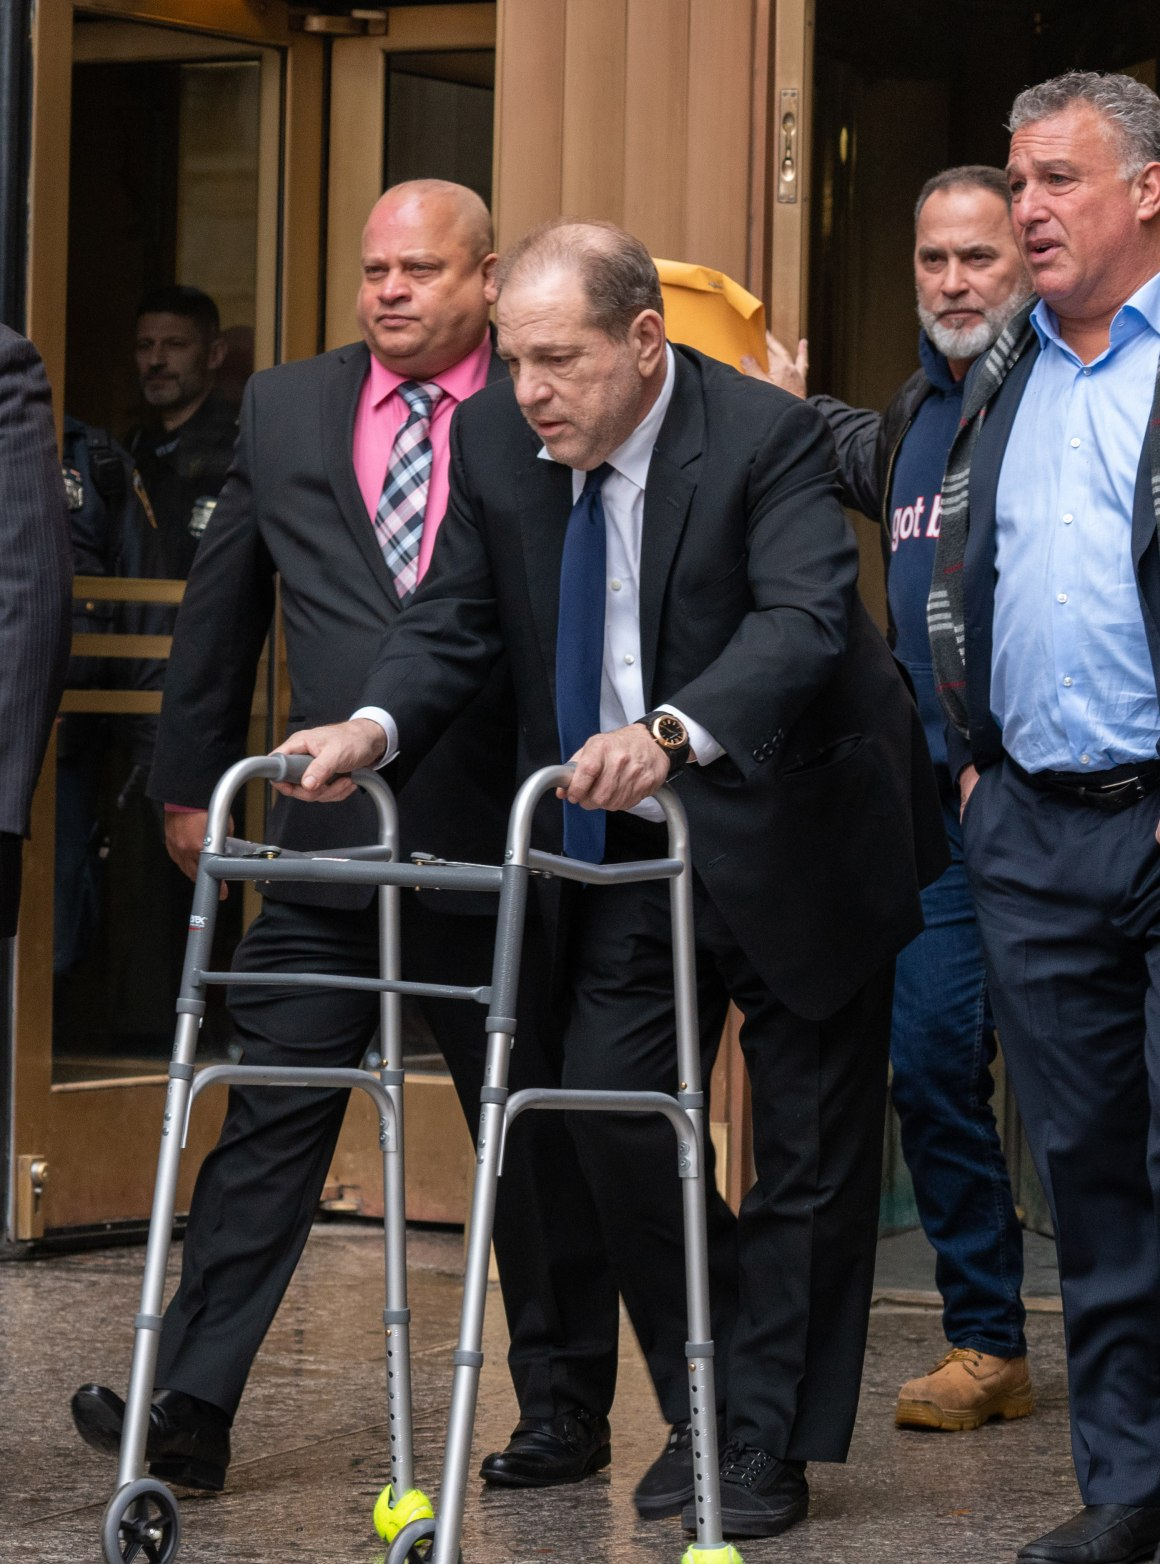 Harvey Weinstein Returns To Court For A Bail Hearing